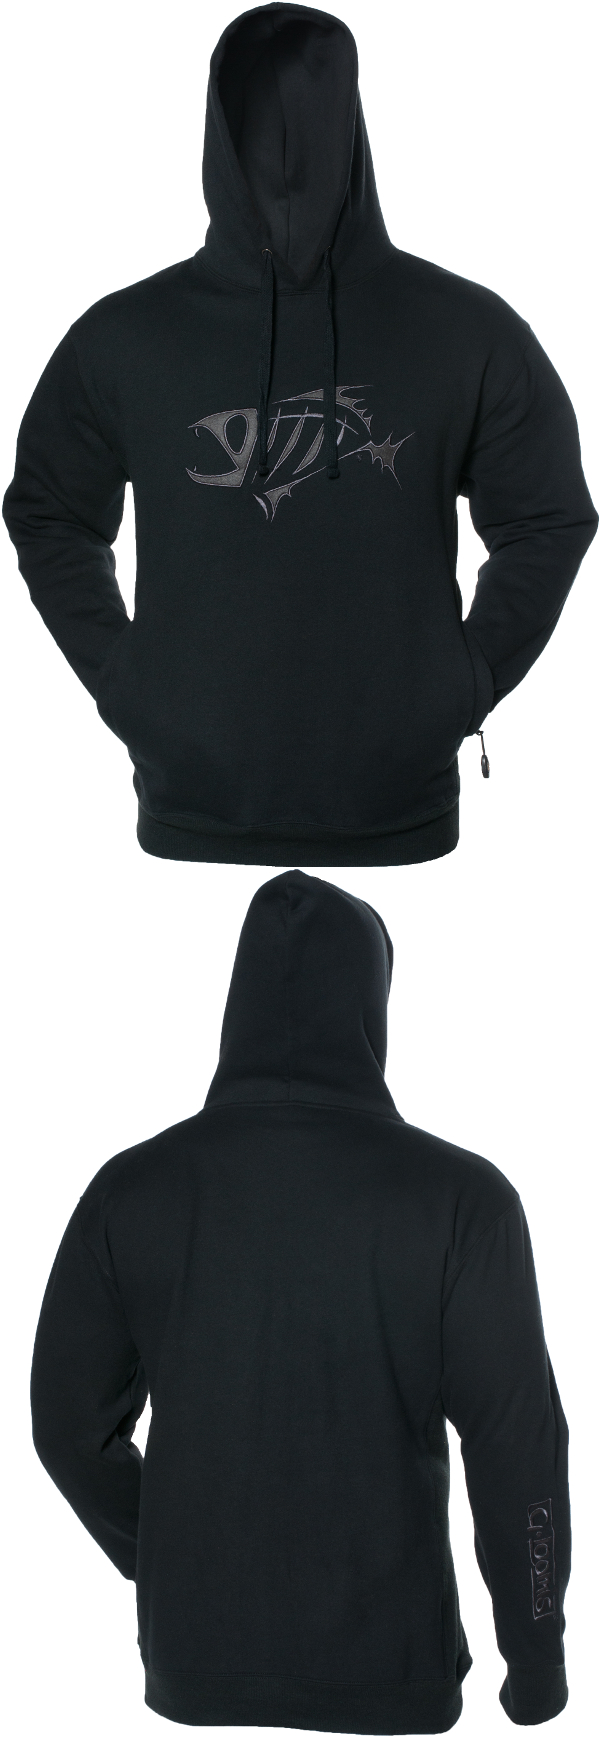 Transition-Premium-Hoodie-Black-Front-Back